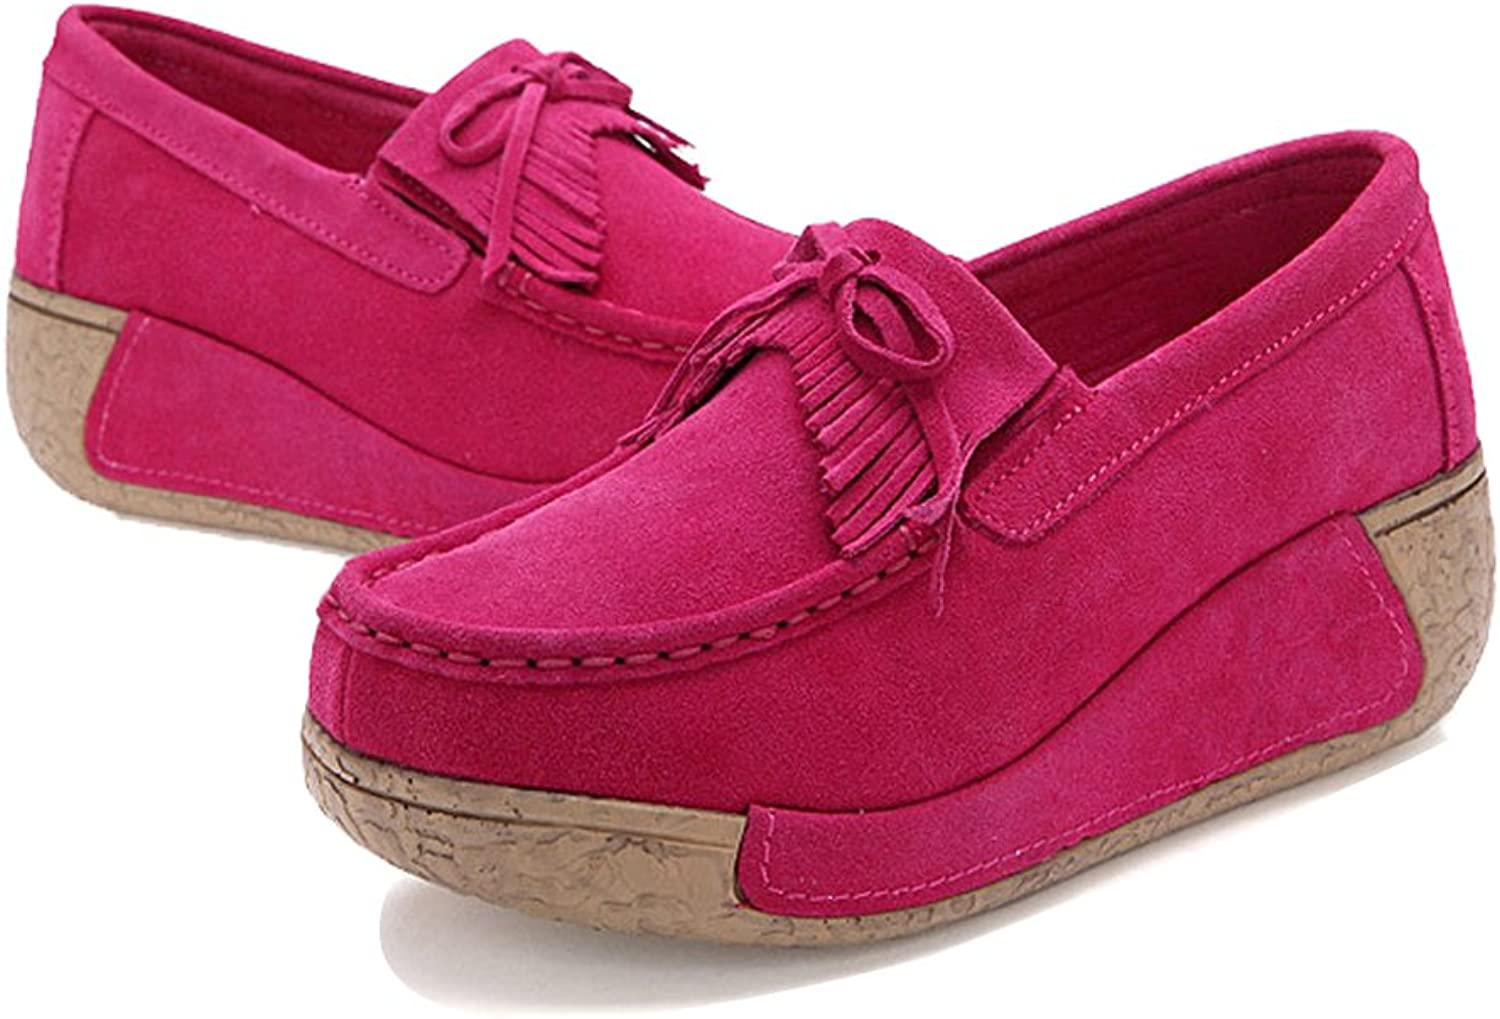 XL1329taohong36 EnllerviiD Women Slip On Wedges Sneakers Fashion Tassel Platform Suede Loafers shoes pink 5.5 B(M) US